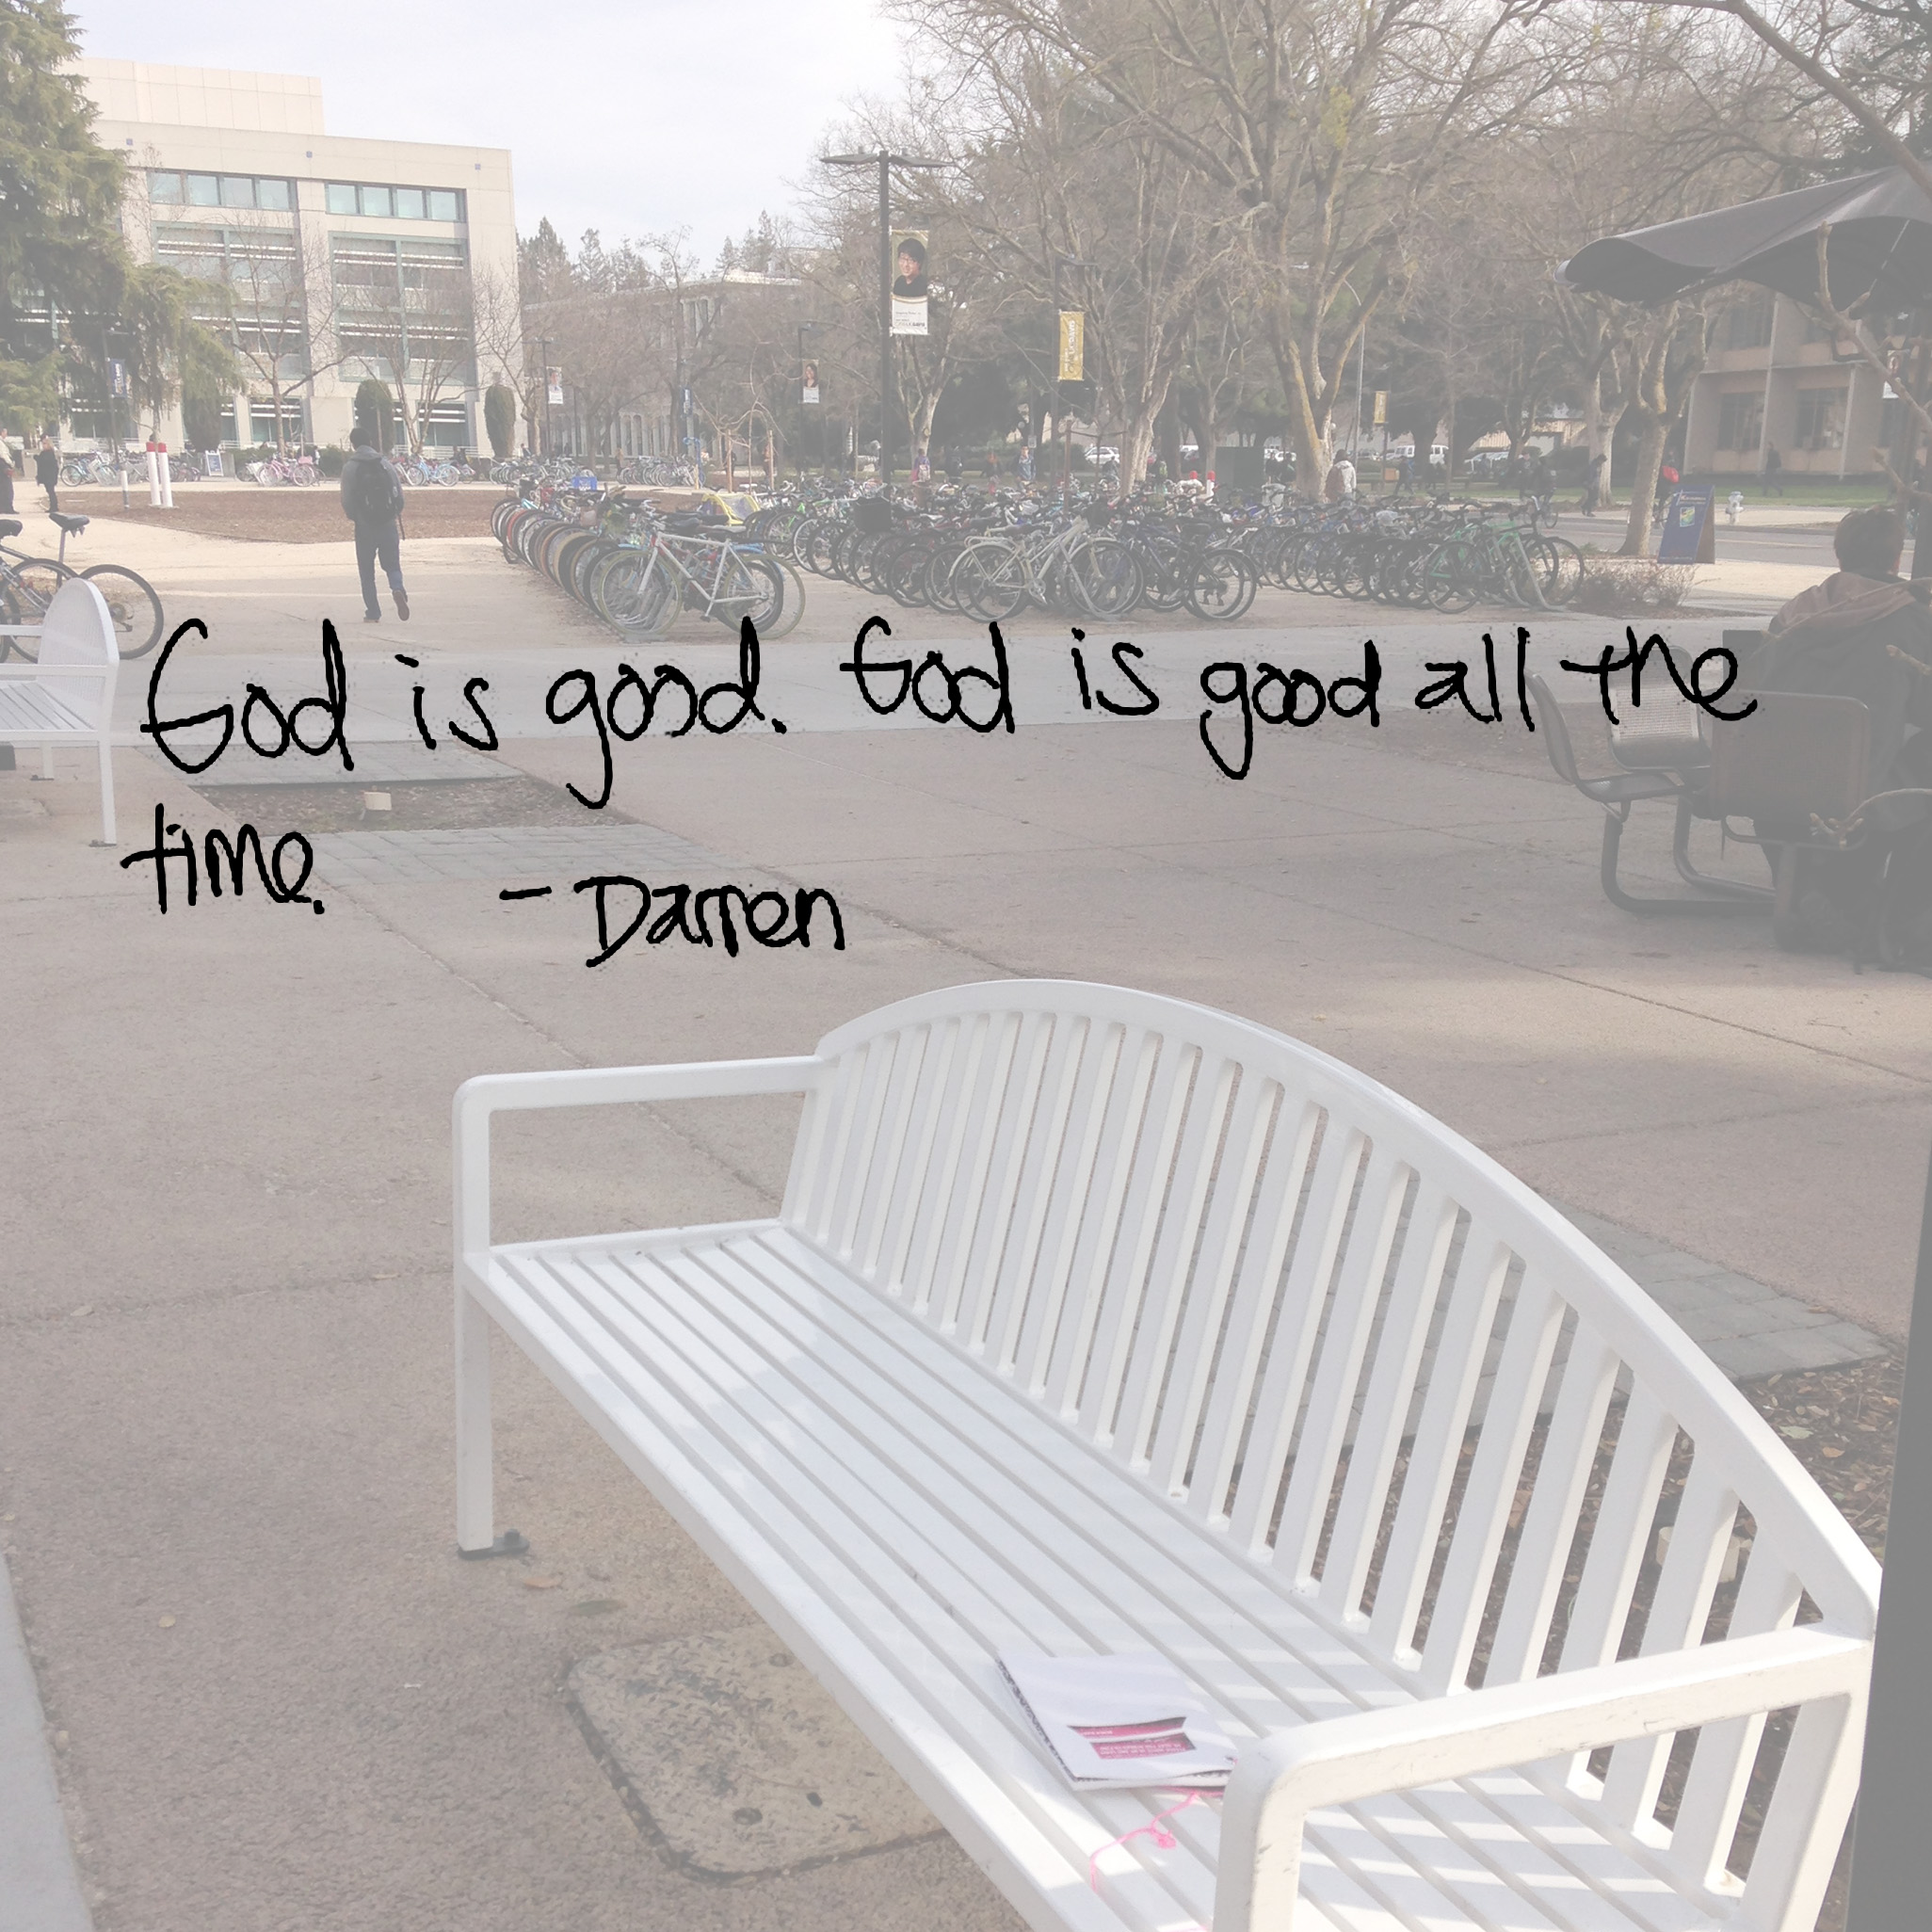 God is good. God is good all the time. - Darren